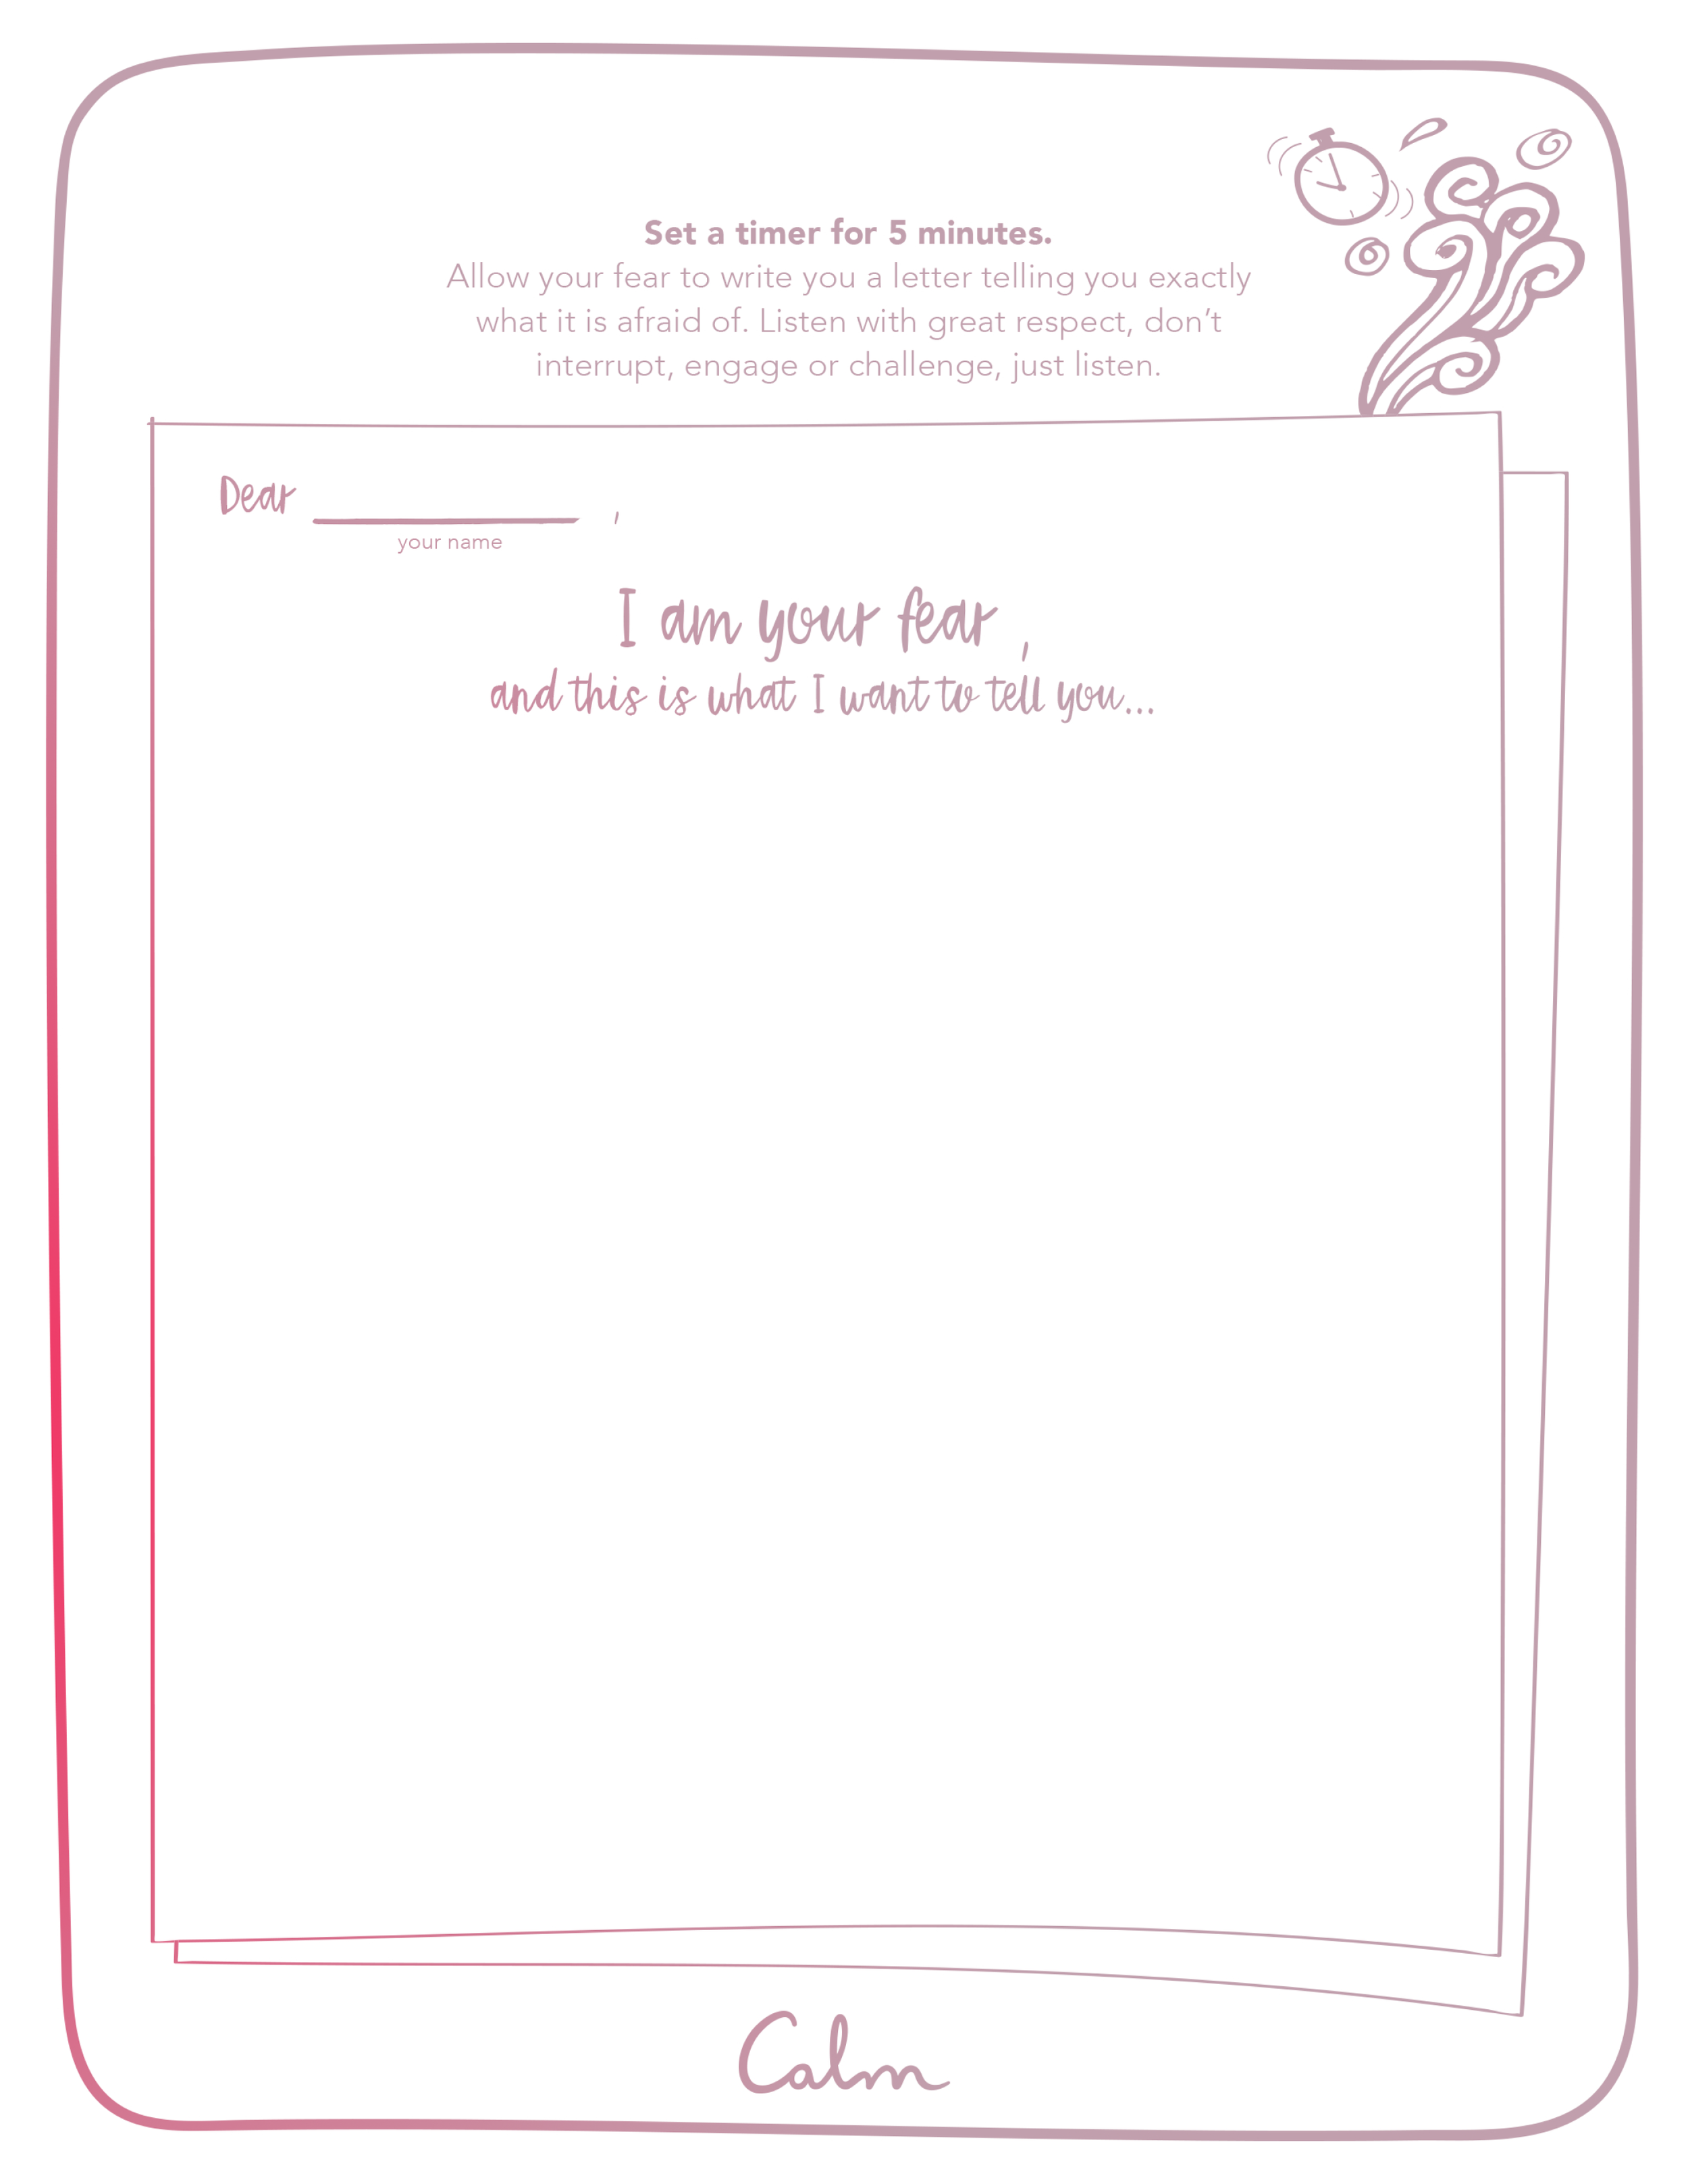 CreativeLivingJournal_Page_08.png